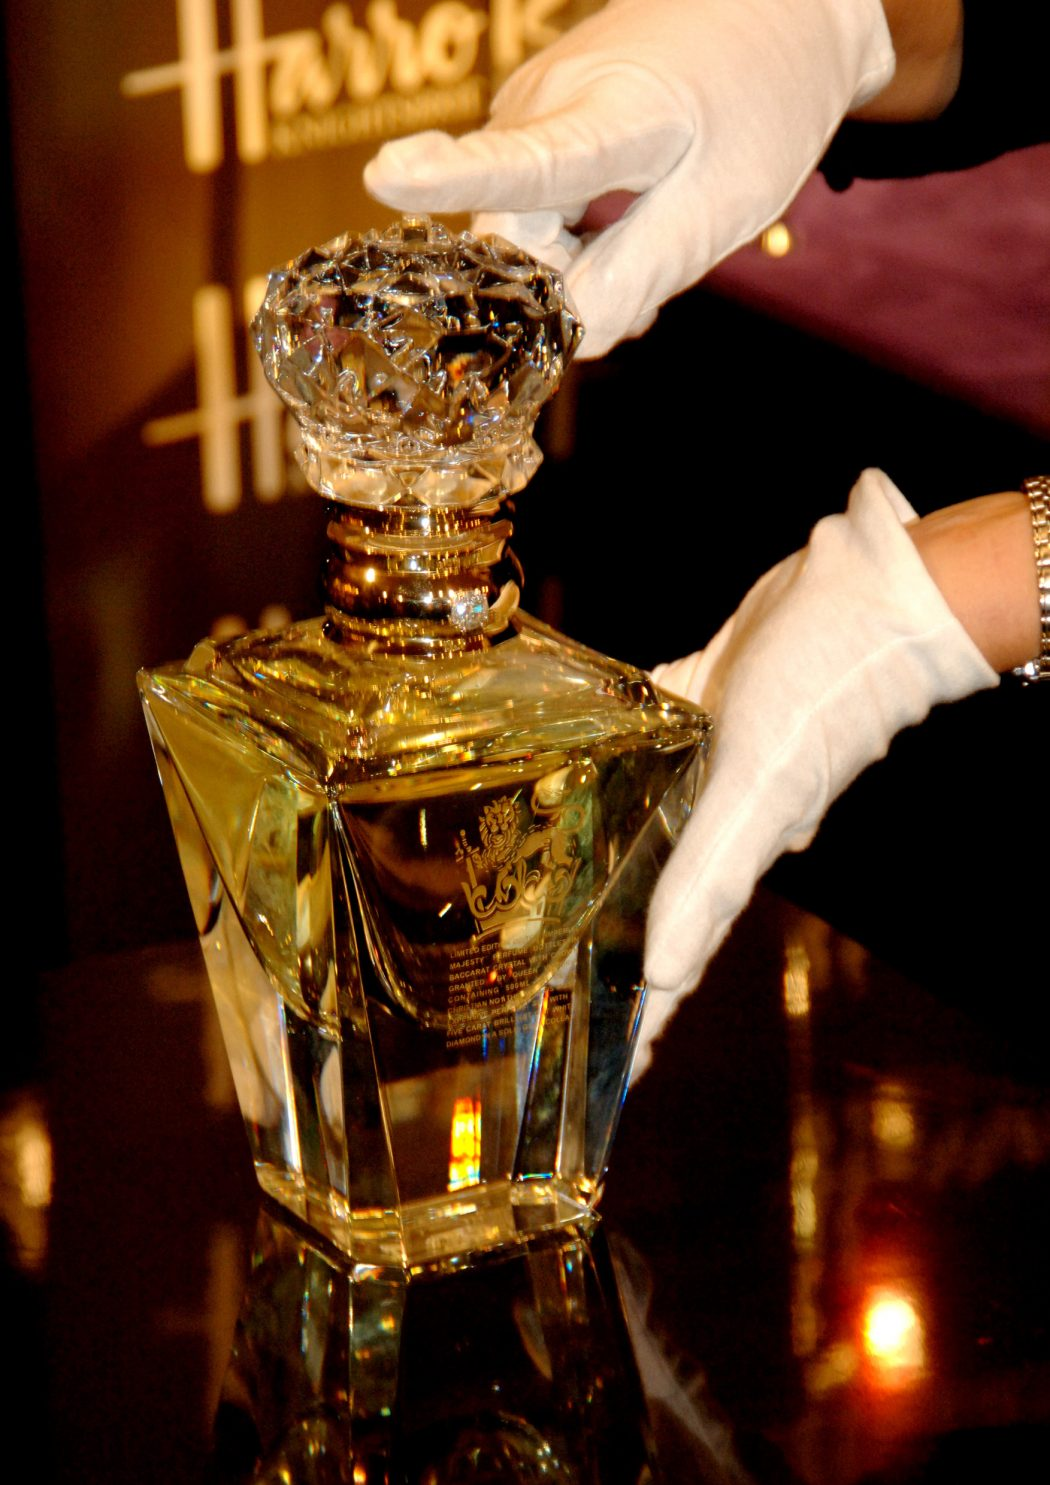 clive christian no-1 perfume imperial majesty edition on display at harrods department store